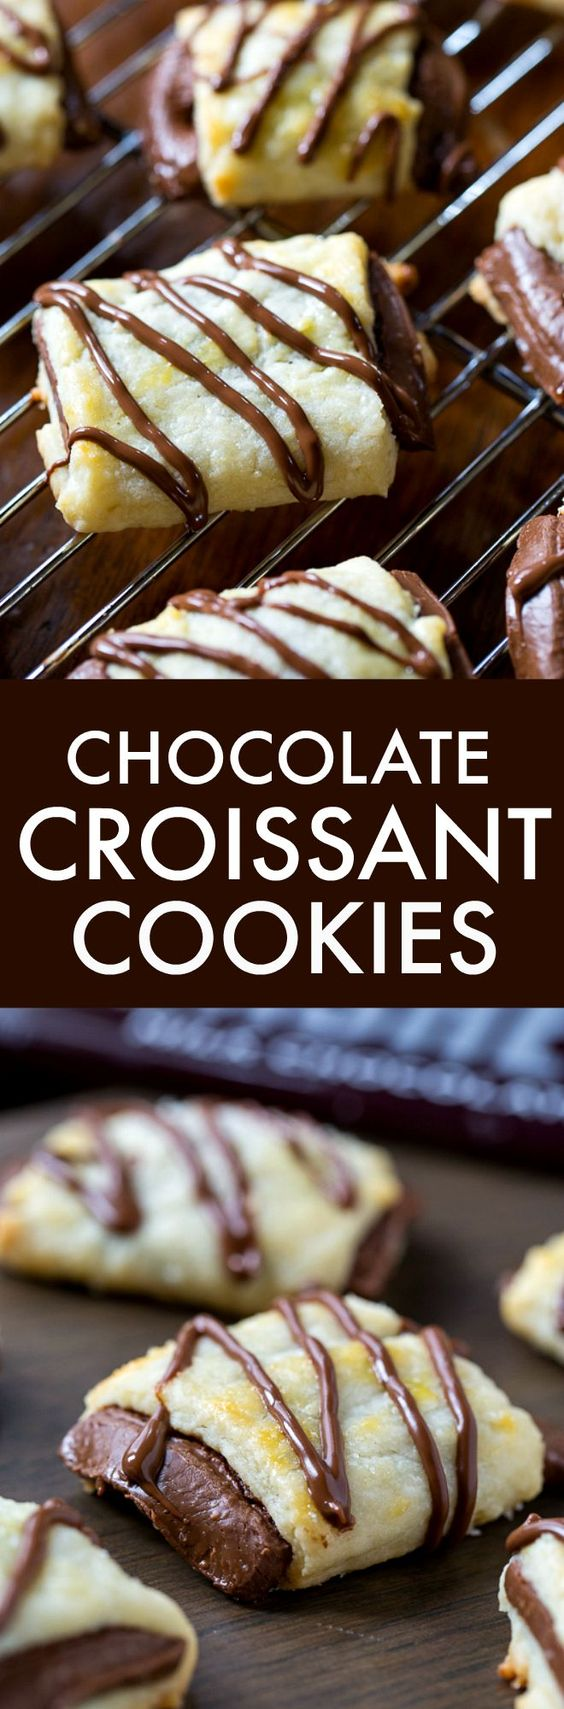 Buttery and delicious Chocolate Croissant Cookies are made with a tender and rich dough wrapped around a Hershey bar.